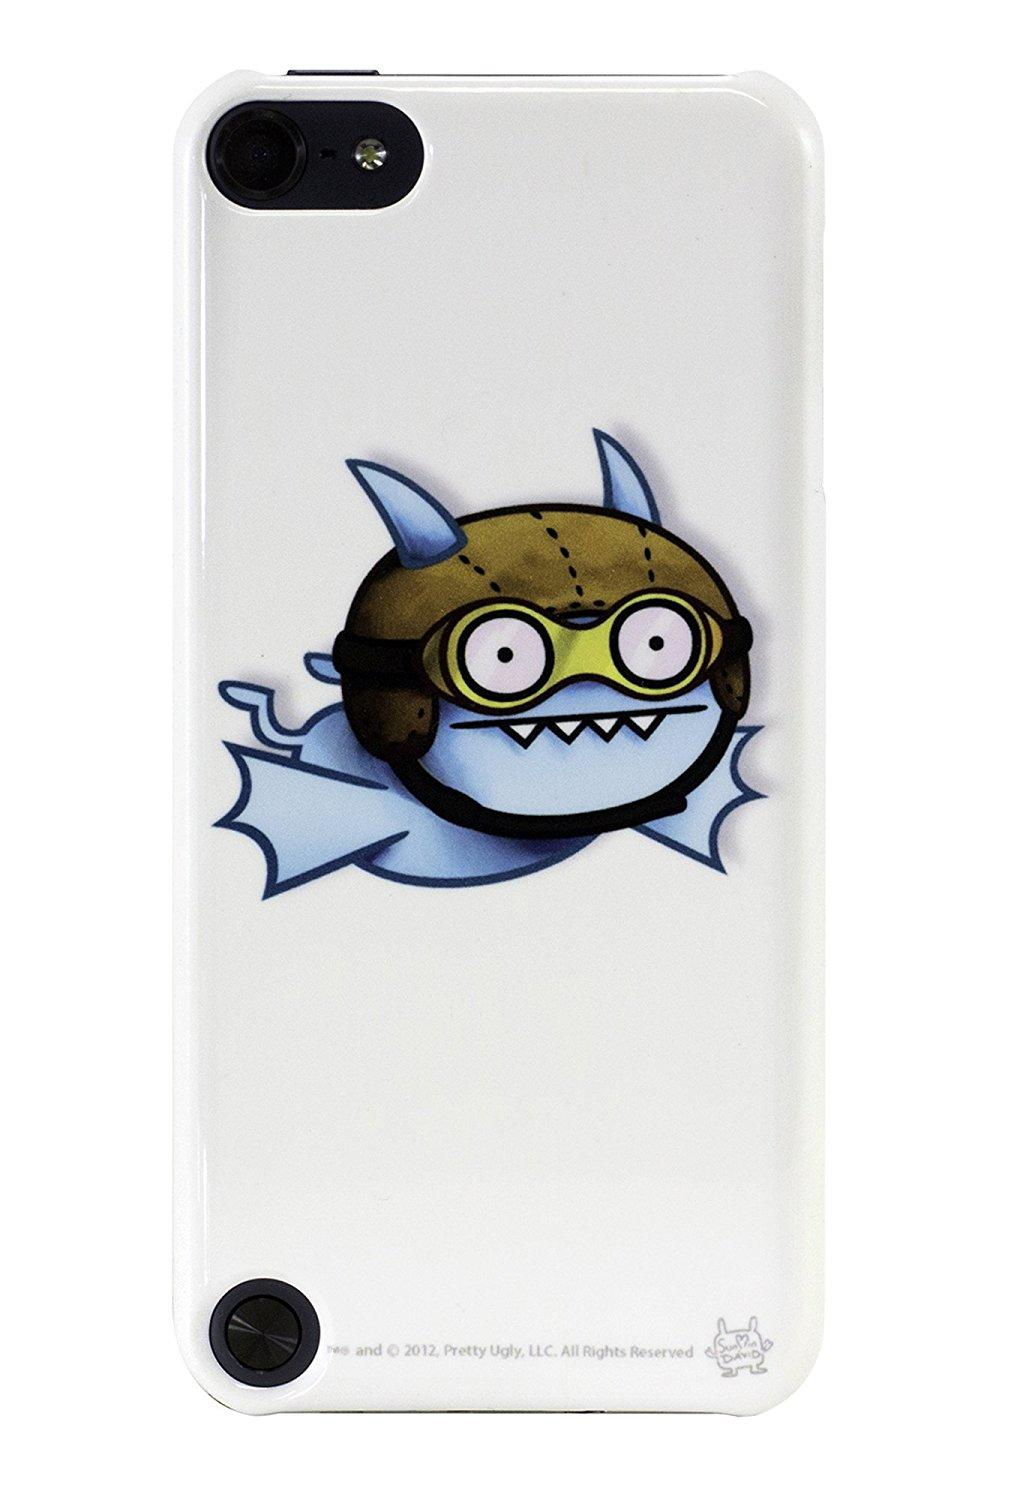 Uncommon Uglydoll Flying Ice Bat Deflector Apple iPod Touch 5G C